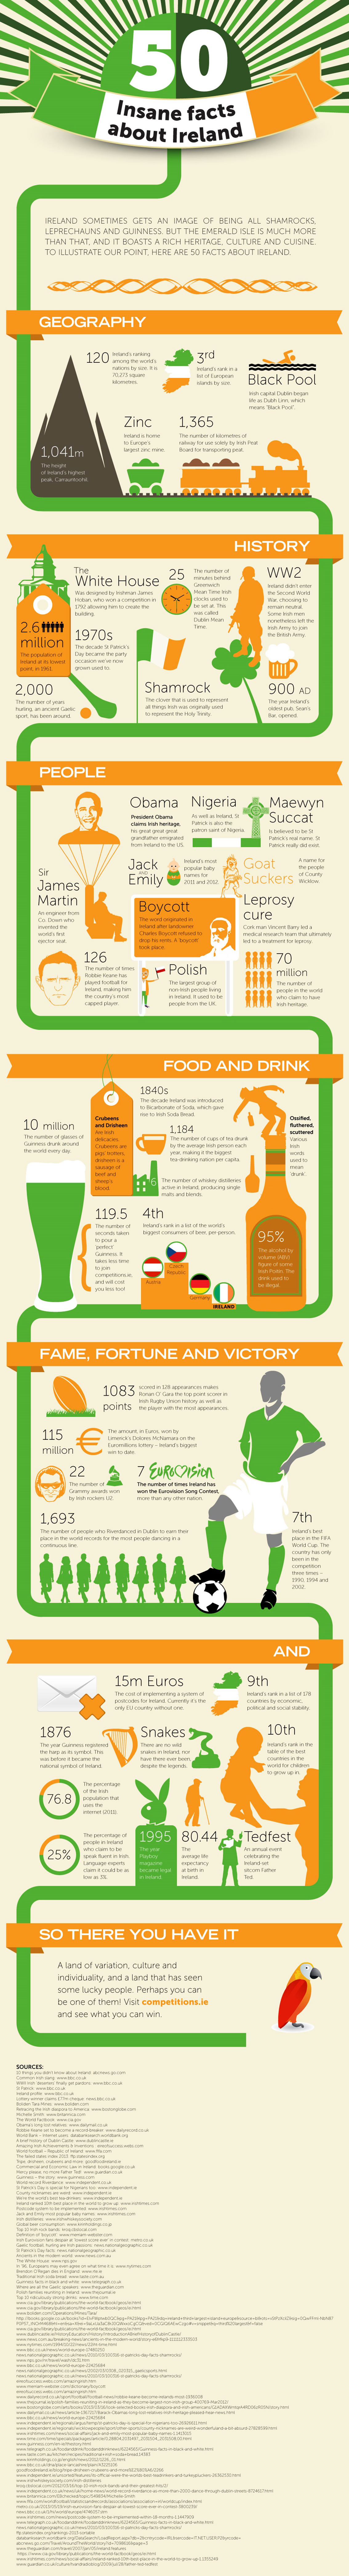 Interesting Facts About Ireland Infographic